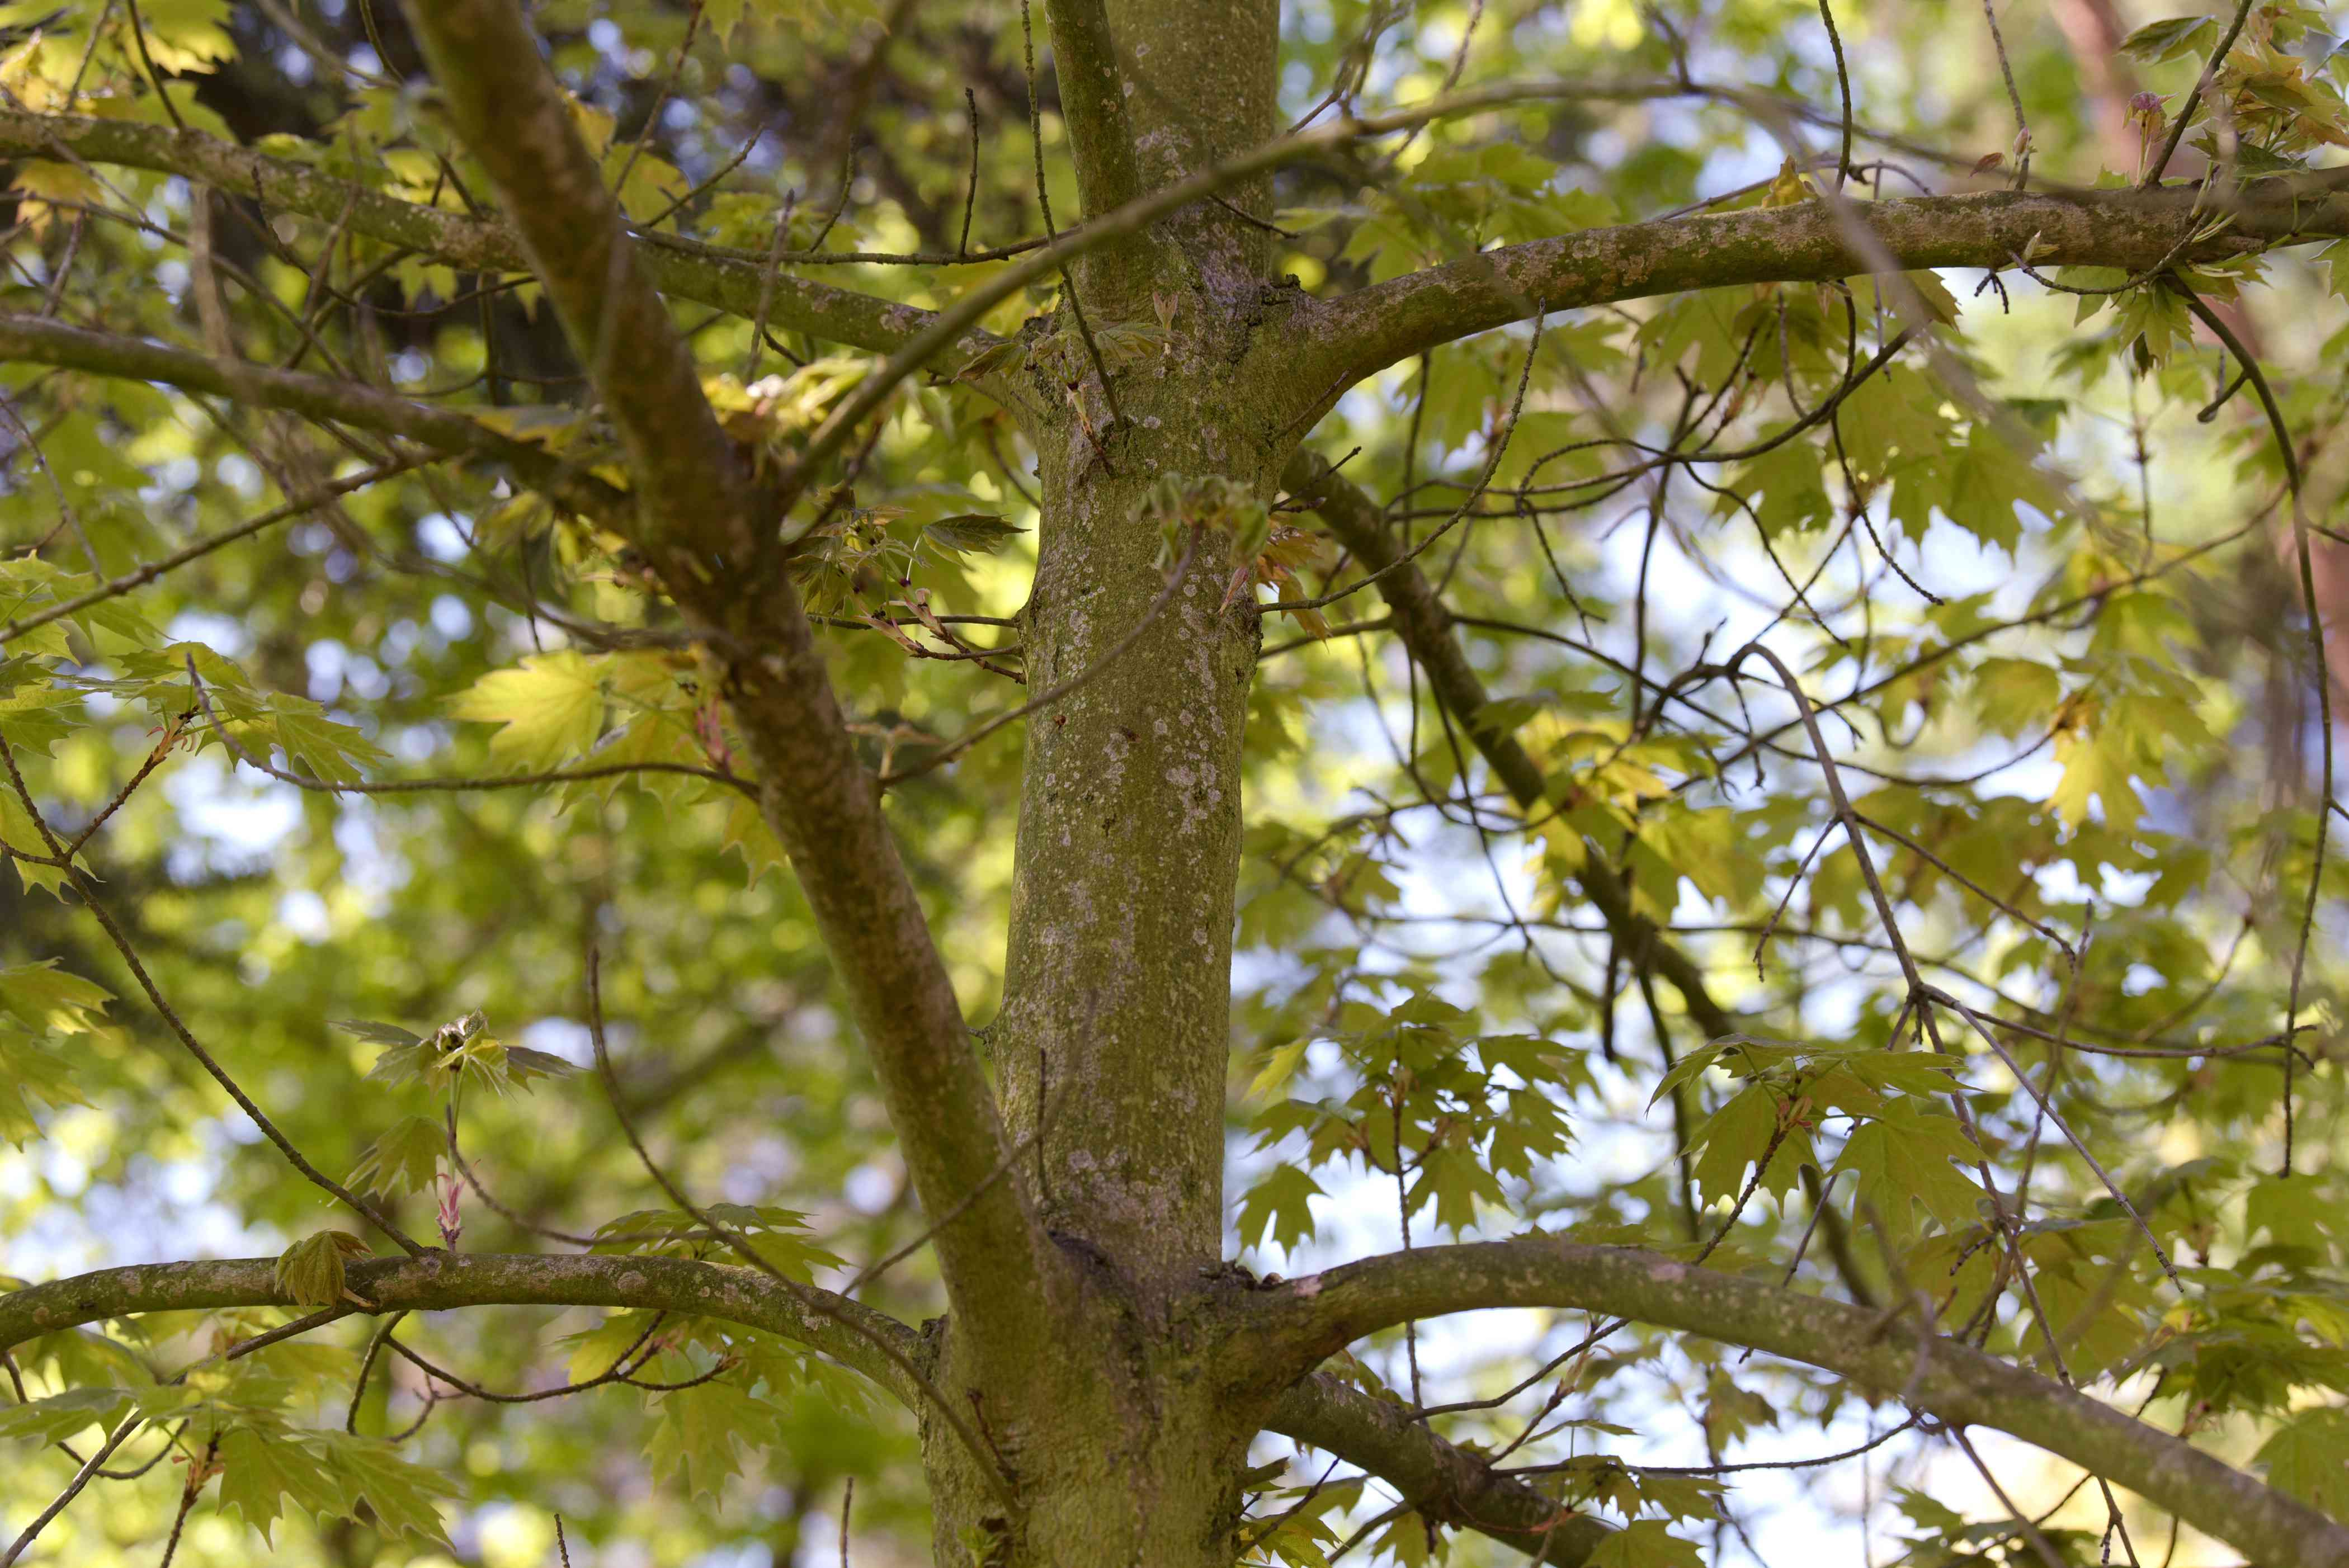 Sugar maple tree trunk with extending branches in the shade